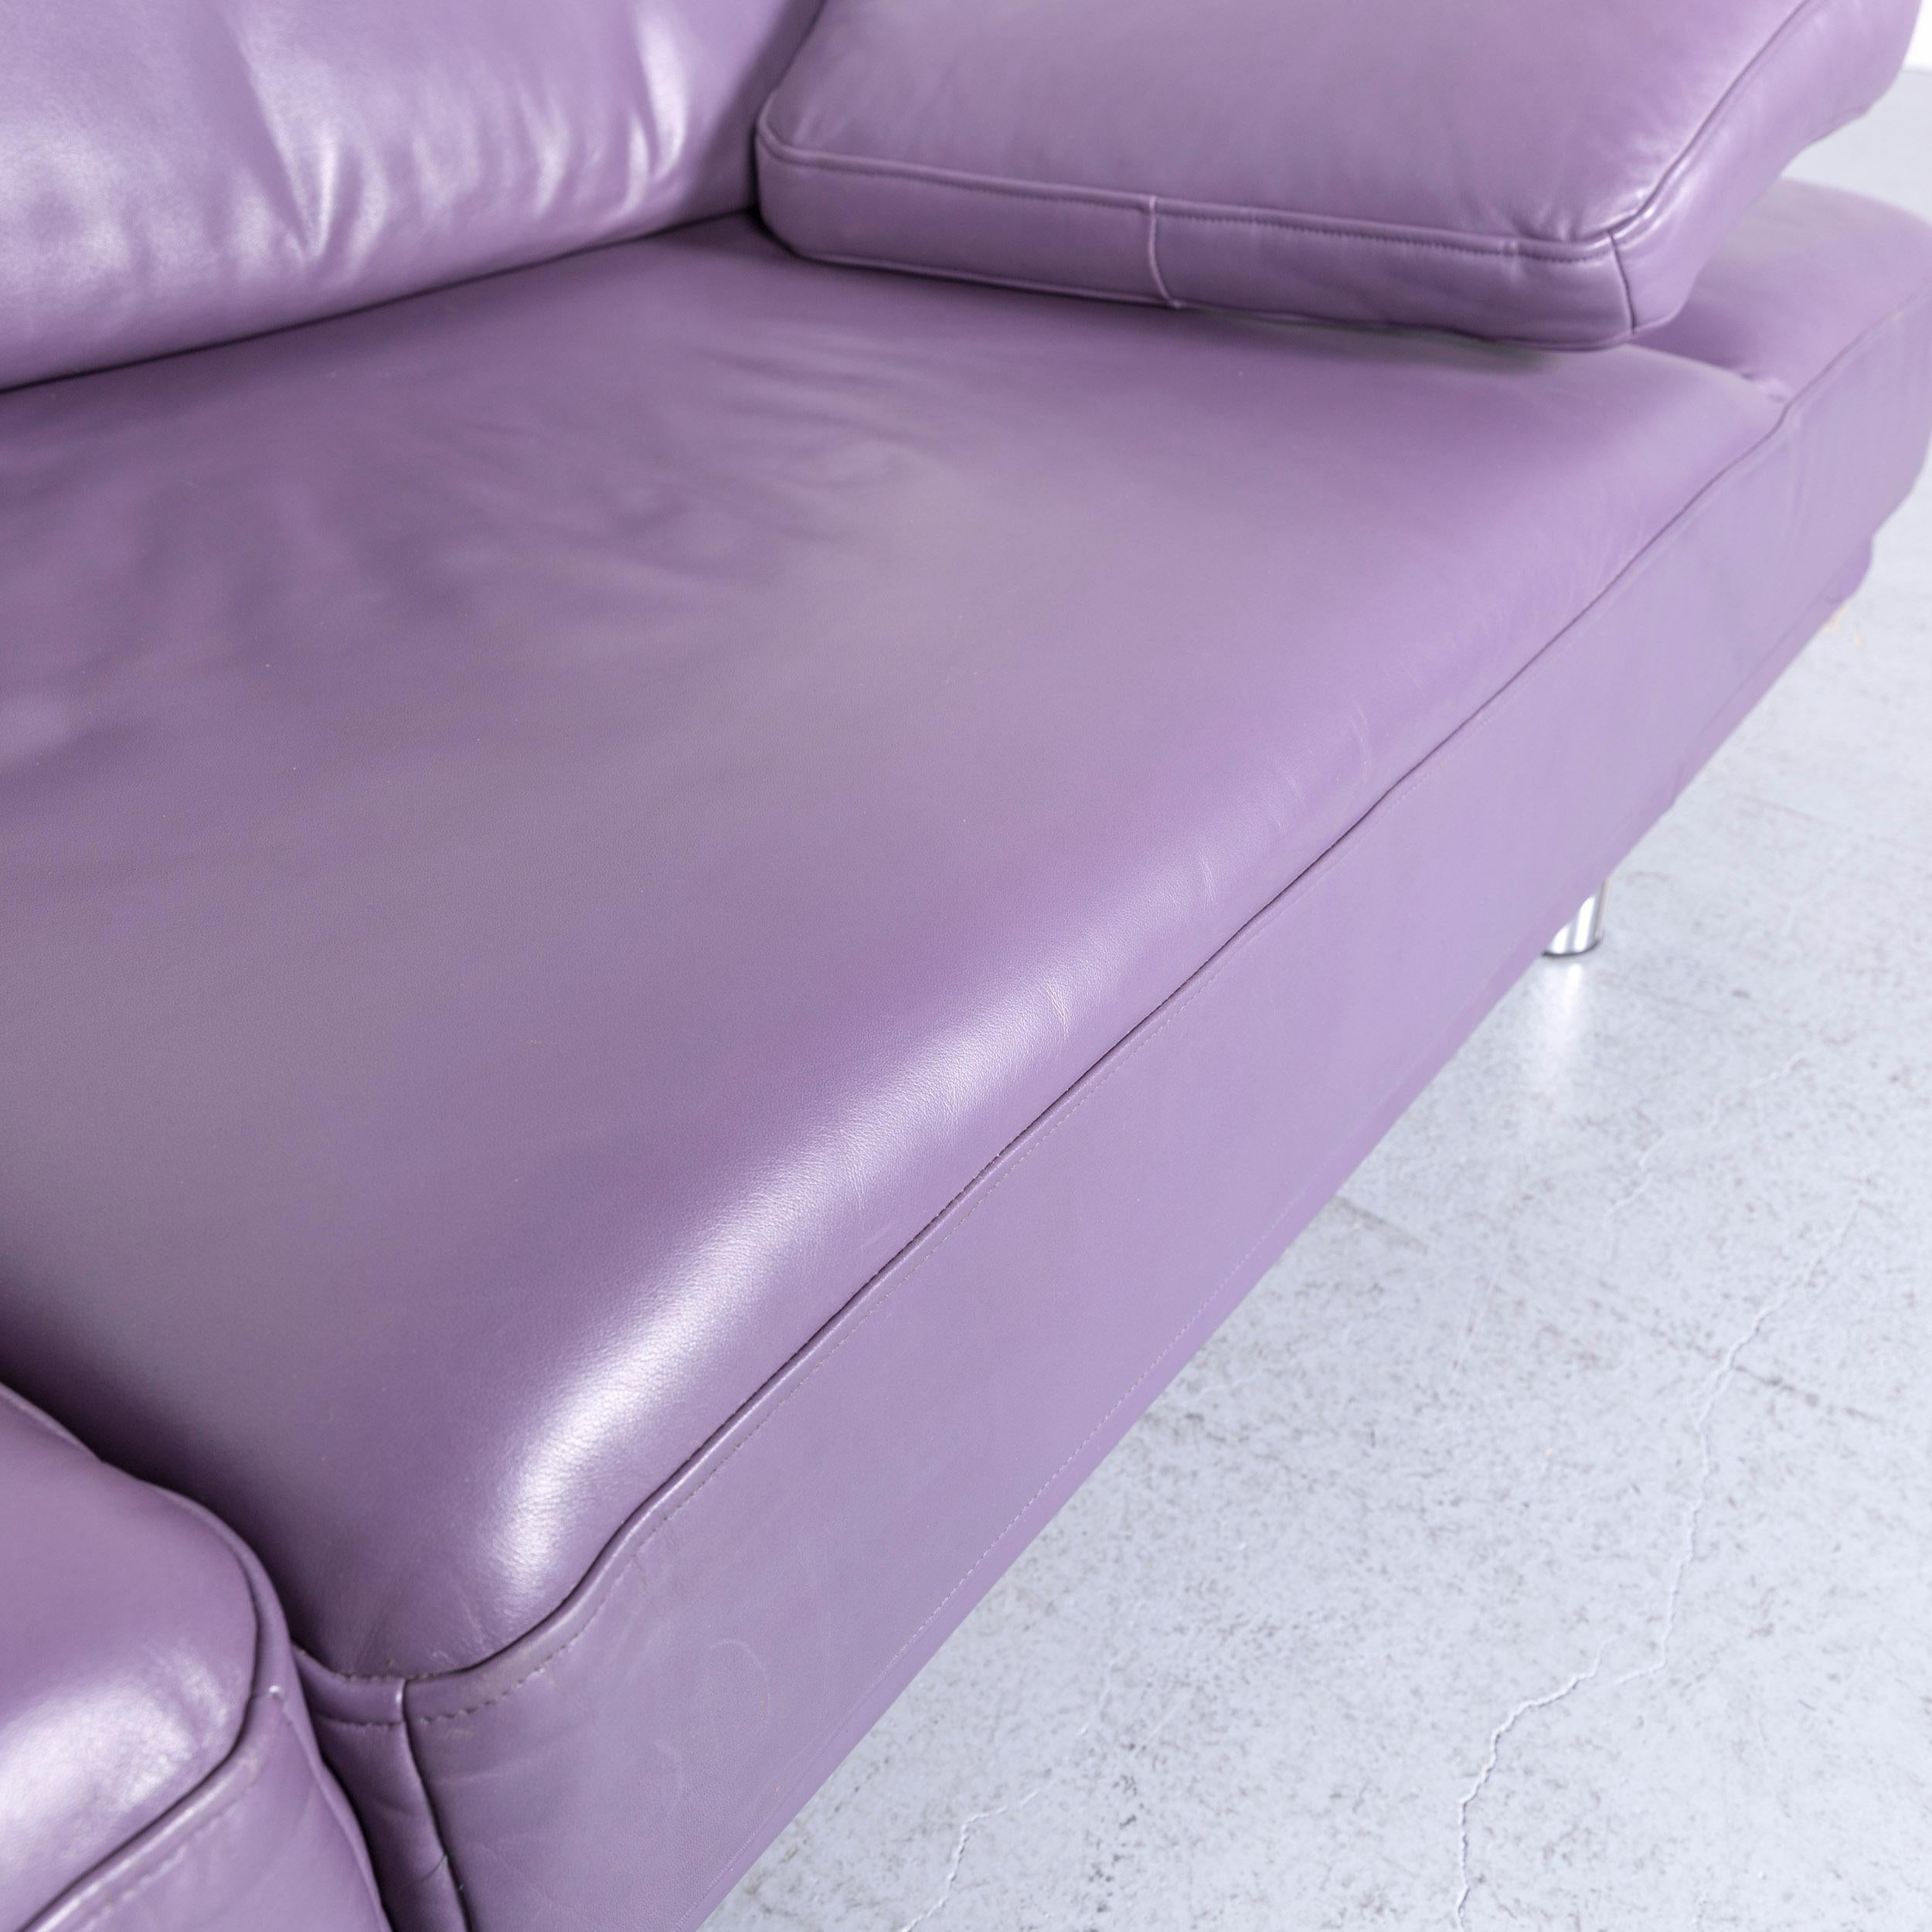 Brilliant Rolf Benz 2400 Designer Leather Sofa Purple Couch With Theyellowbook Wood Chair Design Ideas Theyellowbookinfo